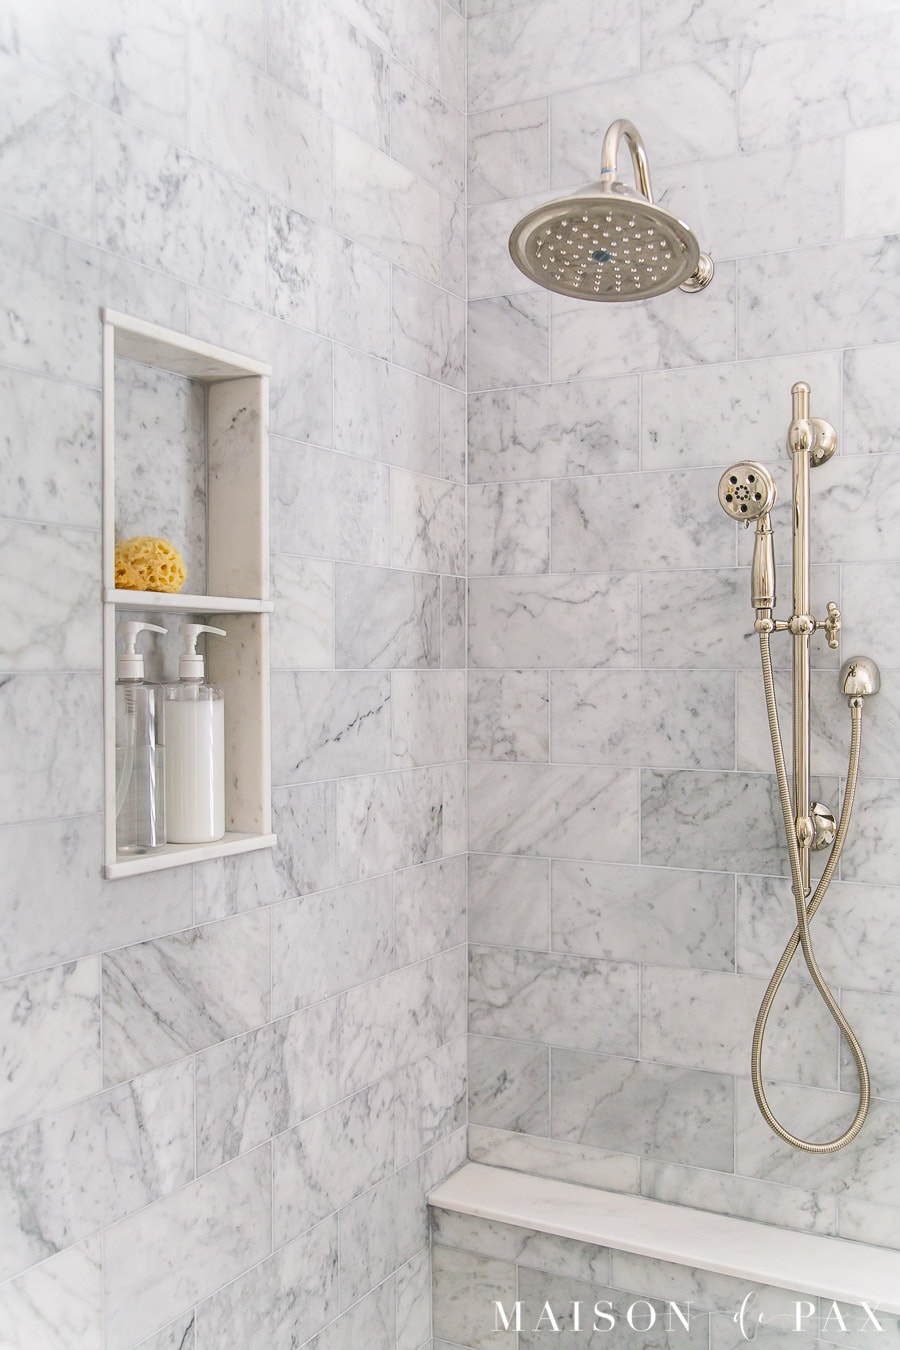 Carrera Marble Tiled Bathroom and shower with a traditional polished nickel shower head- Maison de Pax